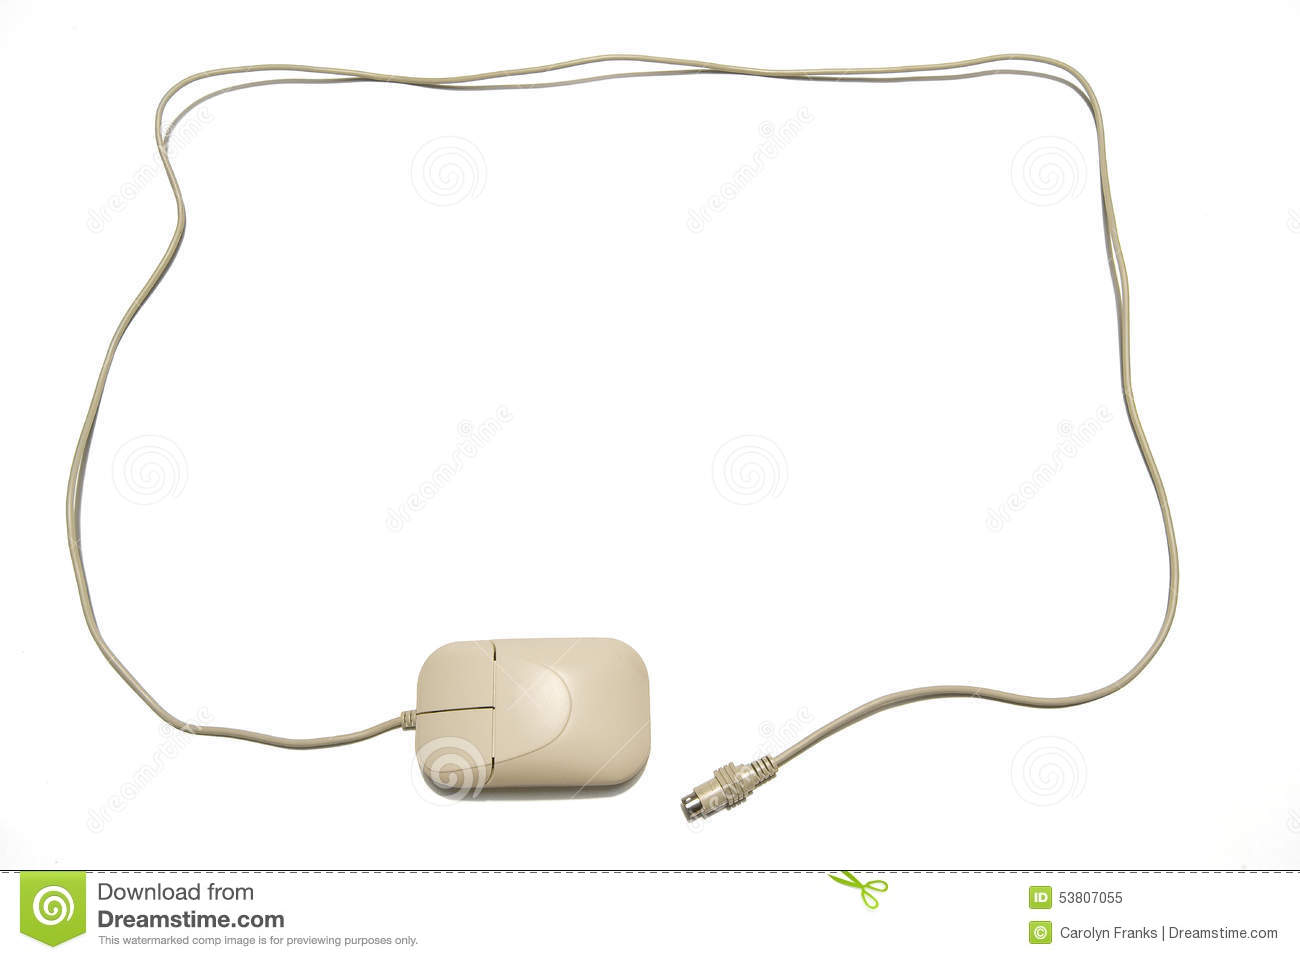 Computer Mouse And Cord For Border Stock Photo - Image: 53807055